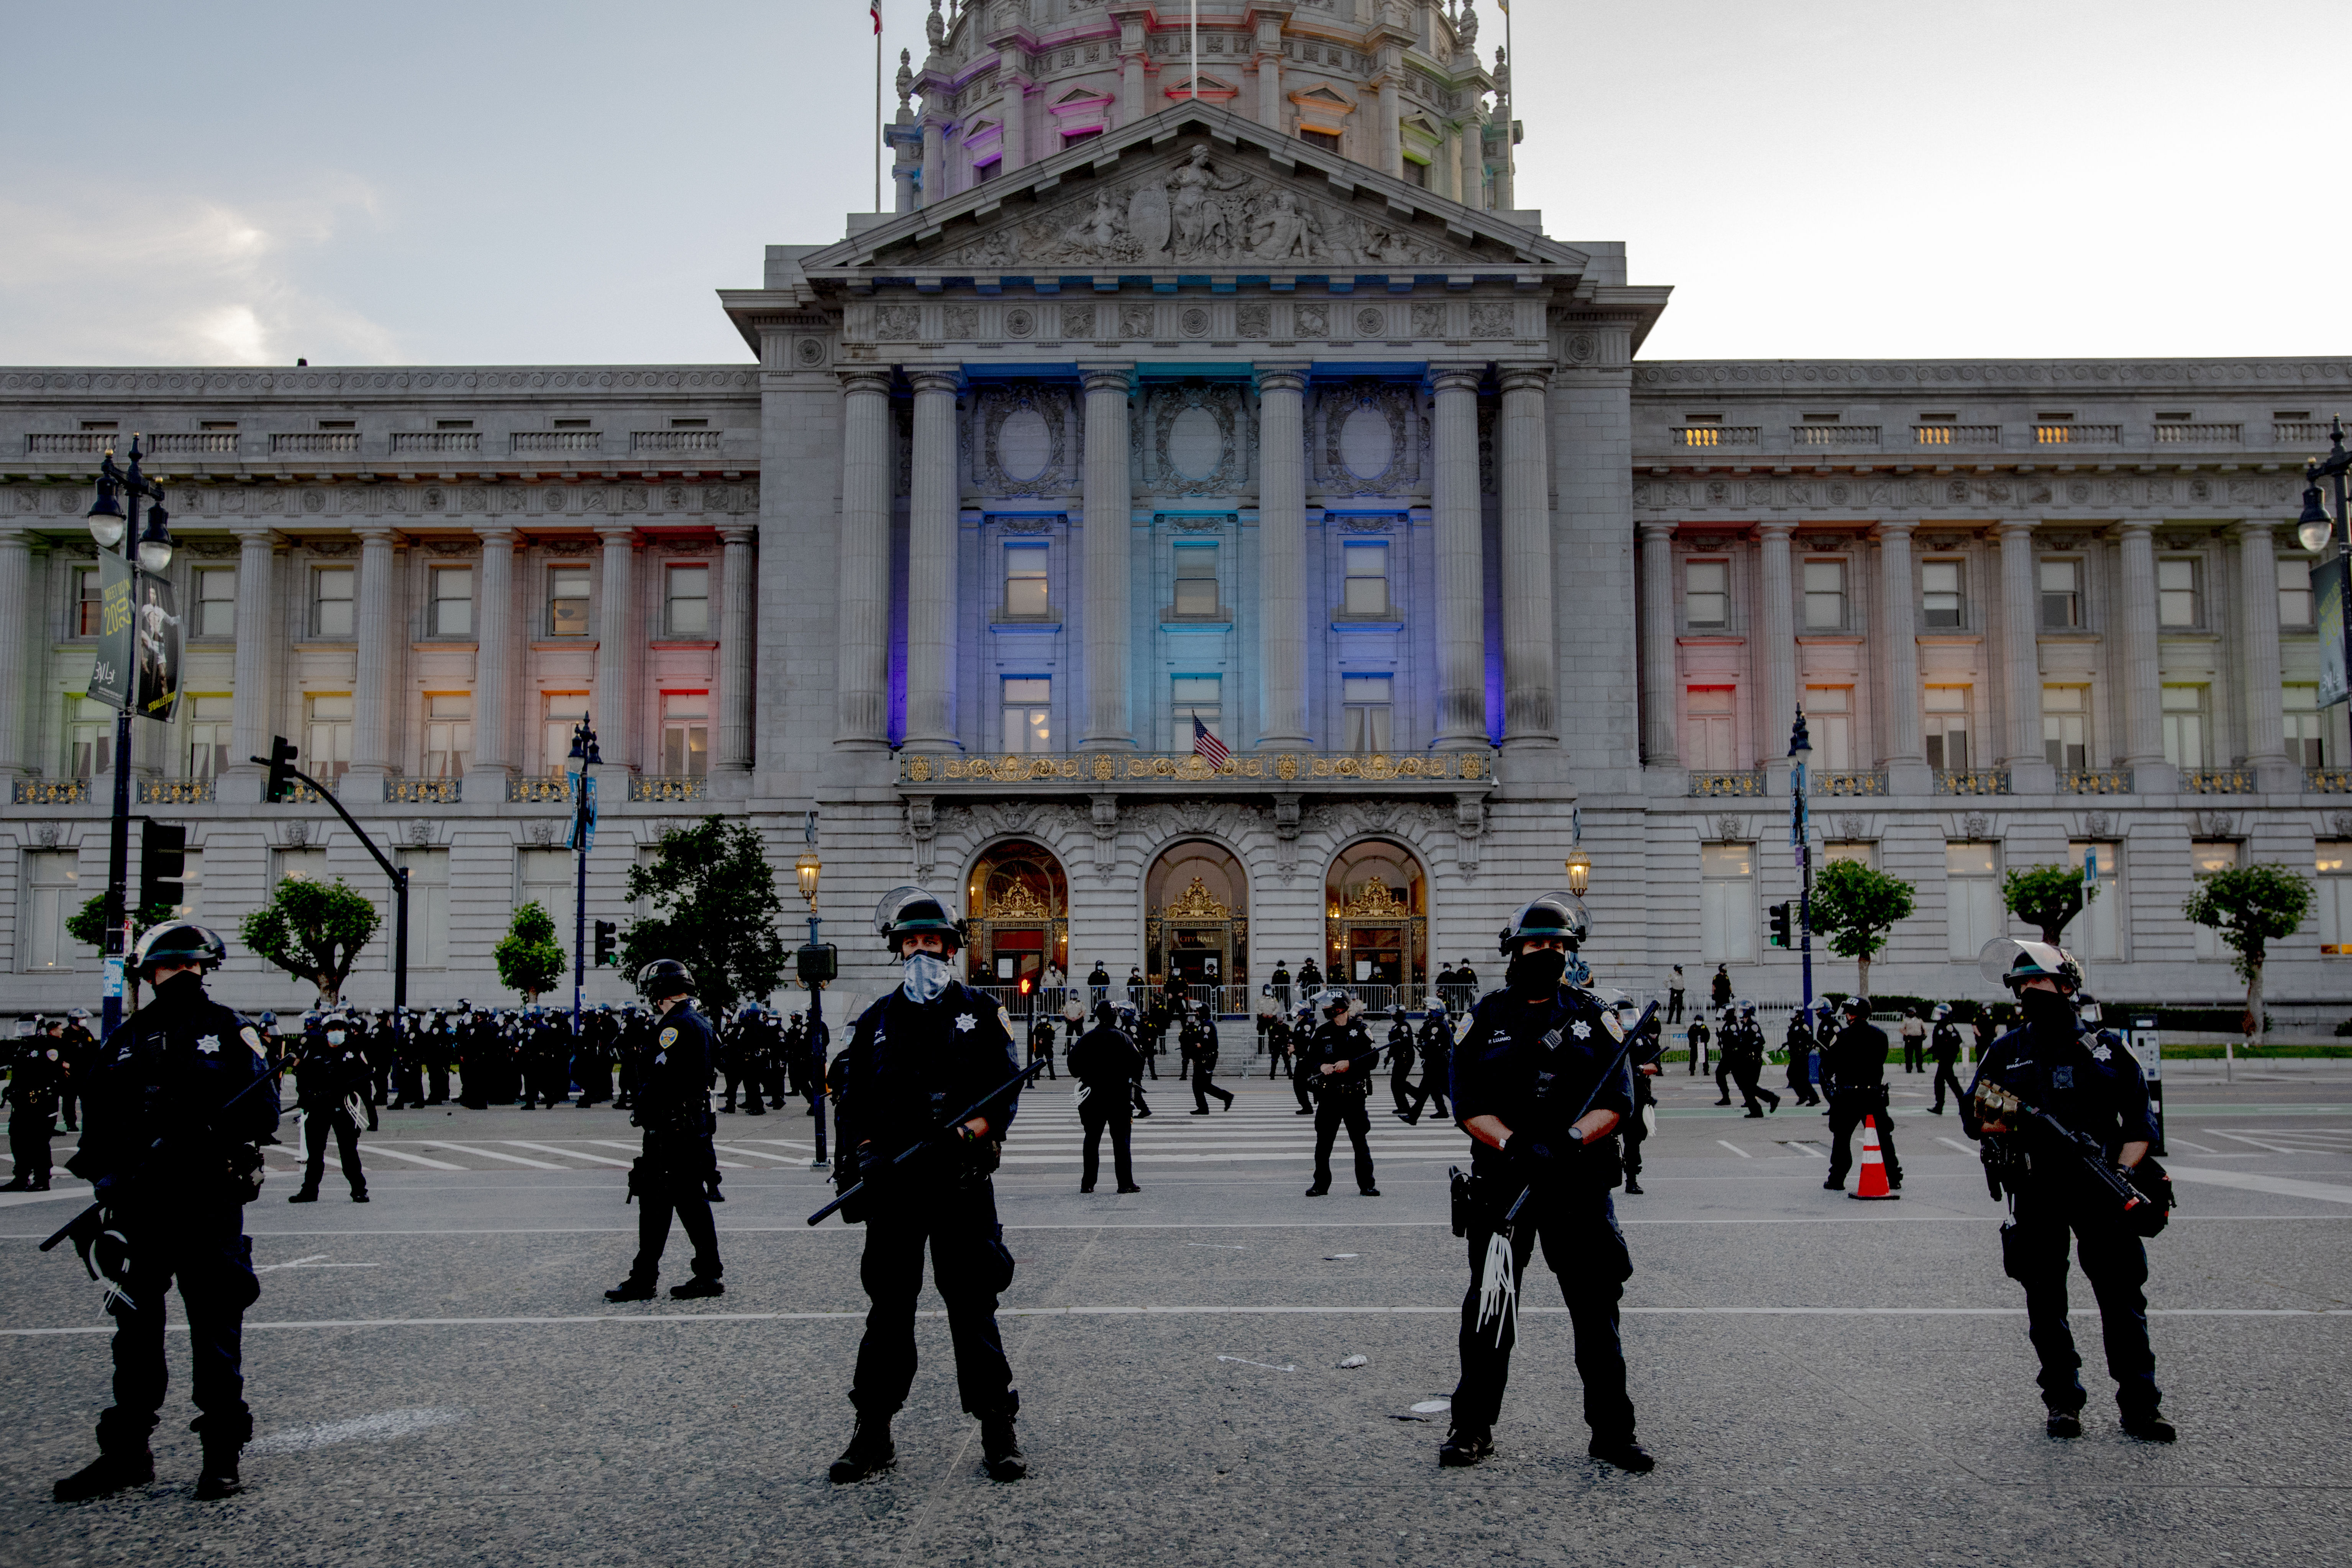 Rows of police officers stand in front of a large building.